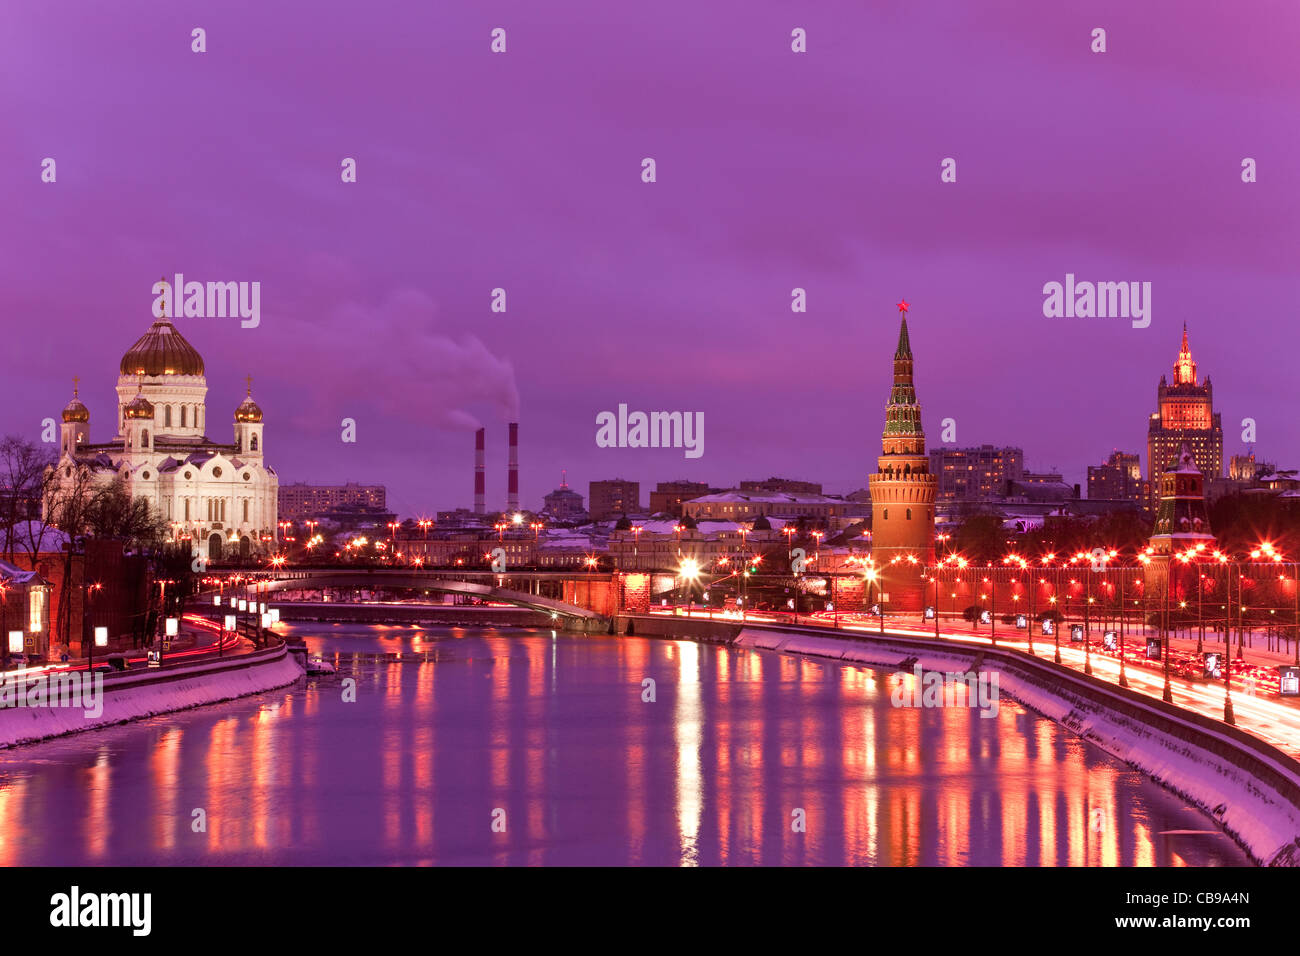 Kremlin and Cathedral of Christ the Saviour, Moscow, Russian Federation at dusk - Stock Image